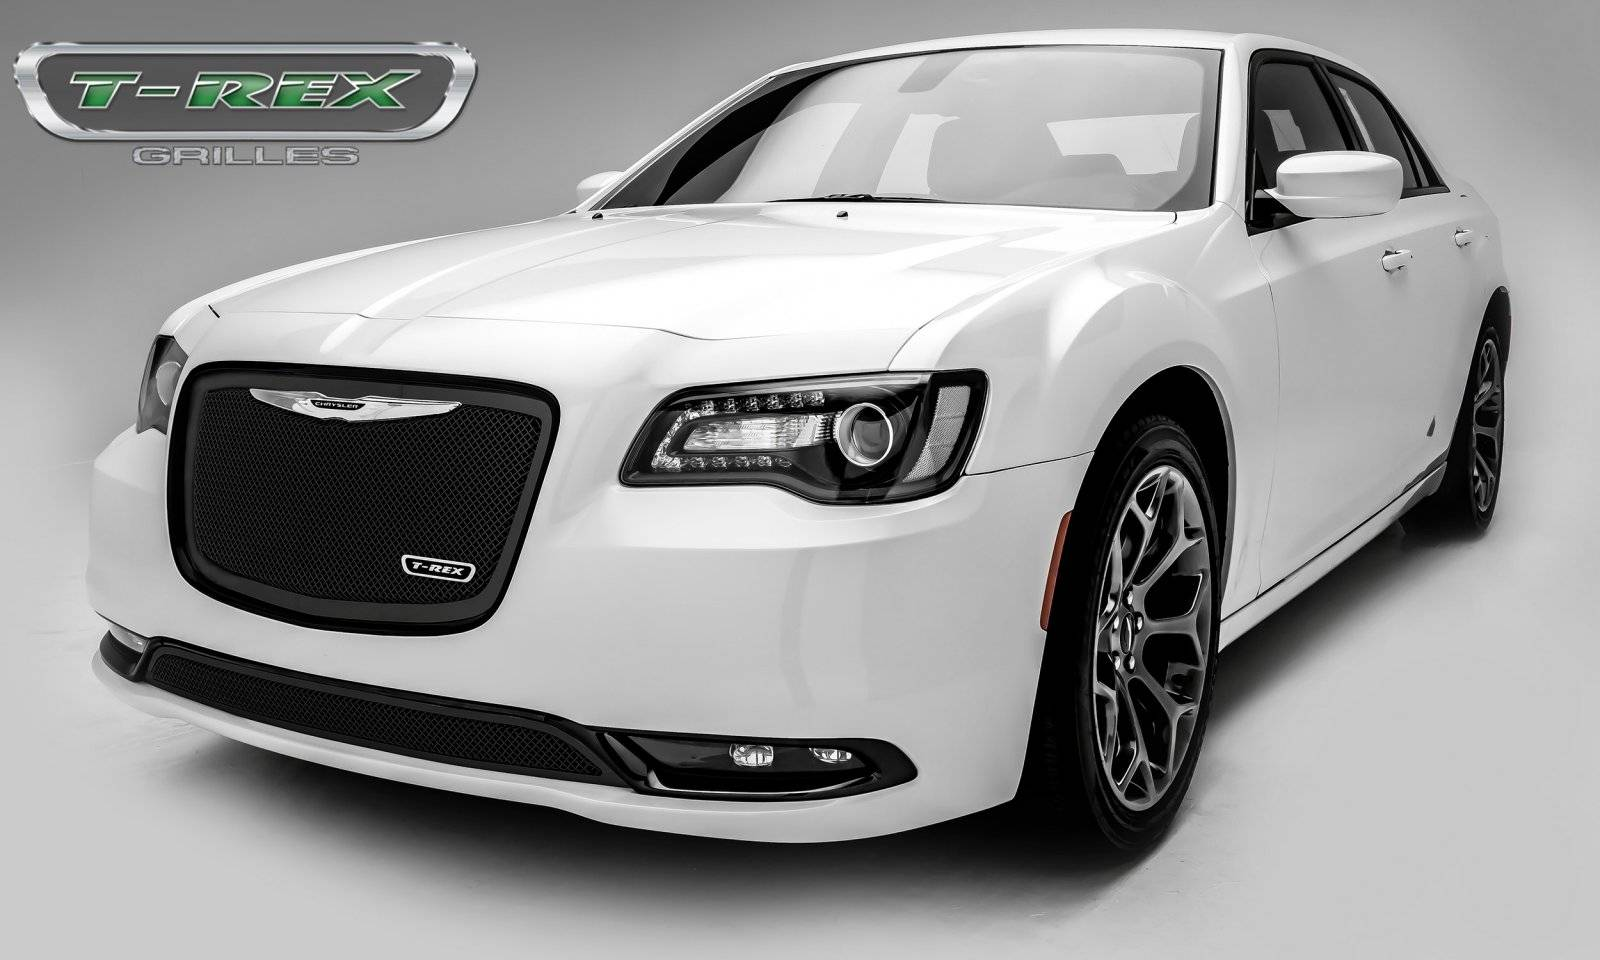 T rex chrysler 300 upper class series main grille replacement with black powder coat finish pt 51436